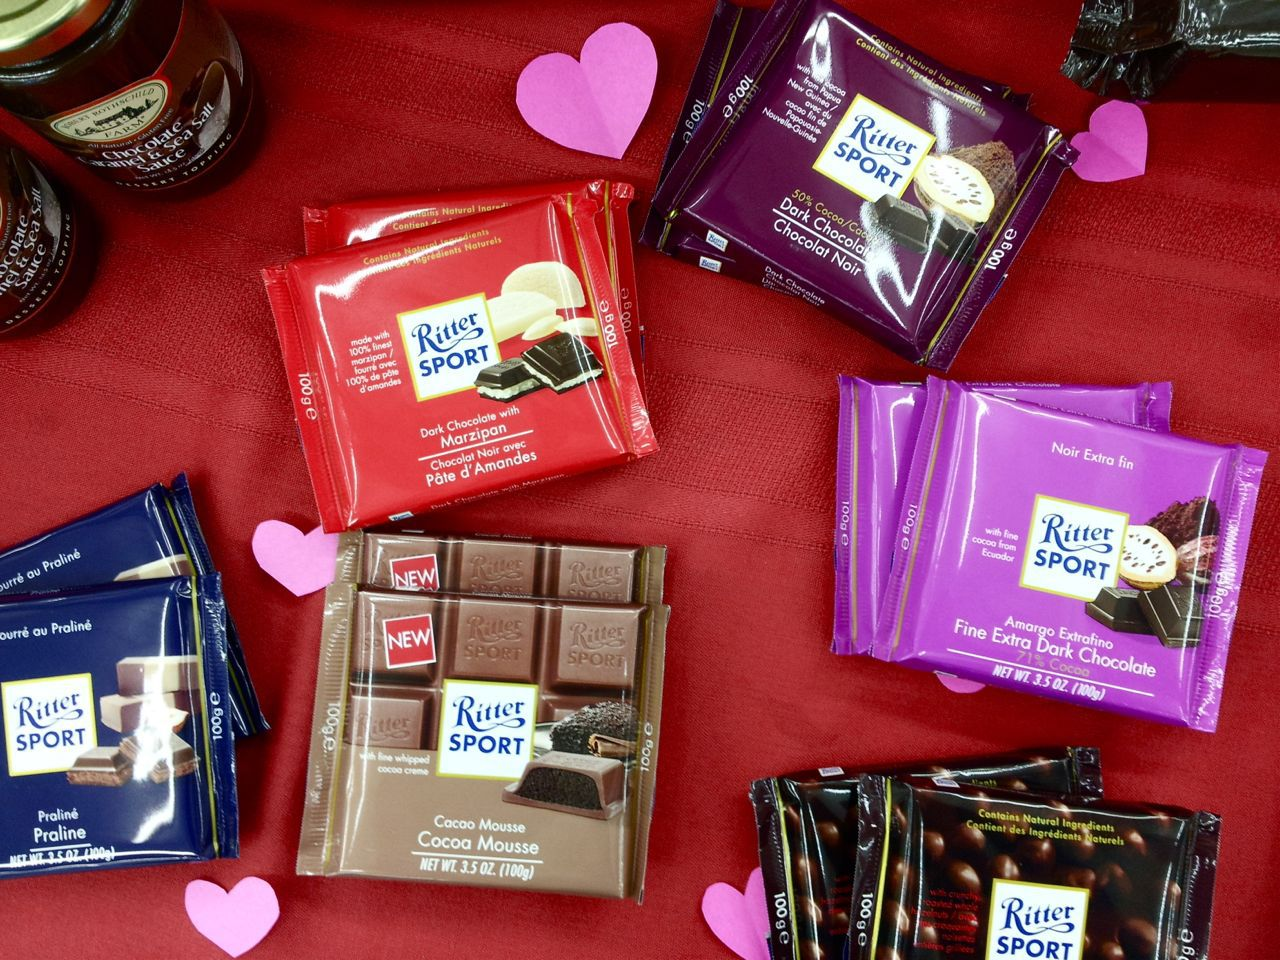 Ritter Sport chocolate bars at Galloway's